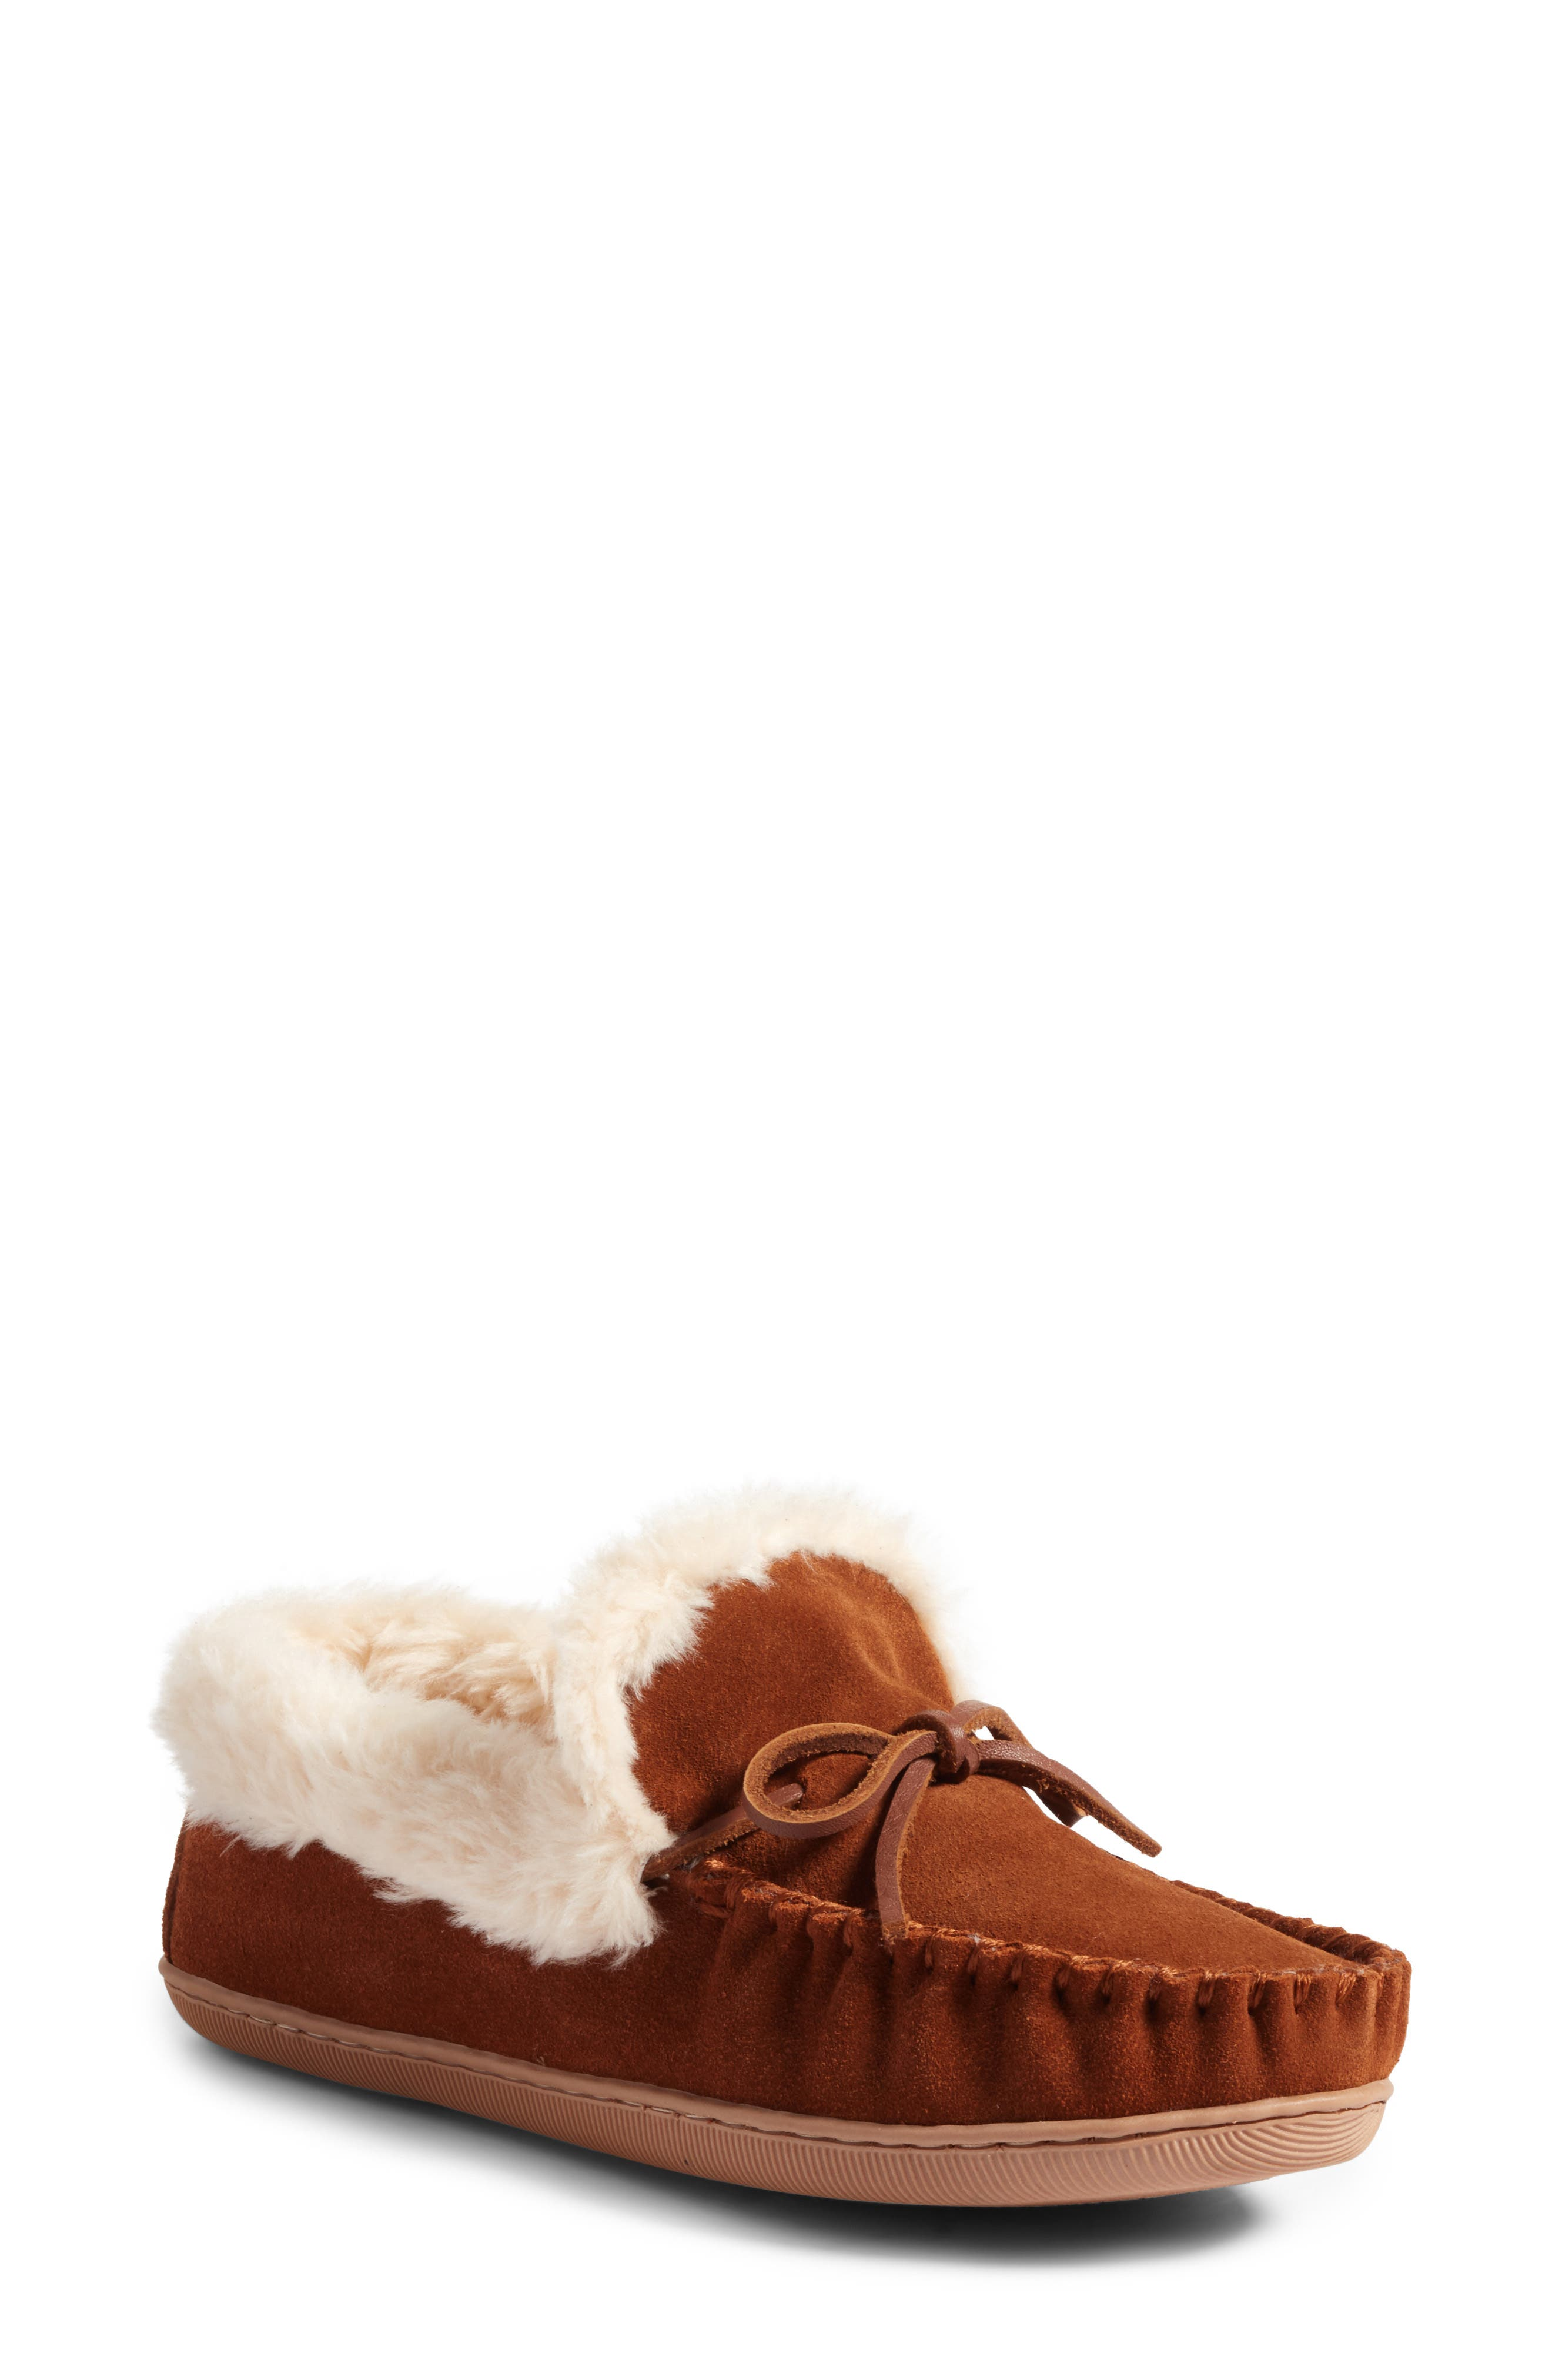 J.Crew Lodge Faux Shearling Moc Slipper,                         Main,                         color, Dark Nutmeg Suede